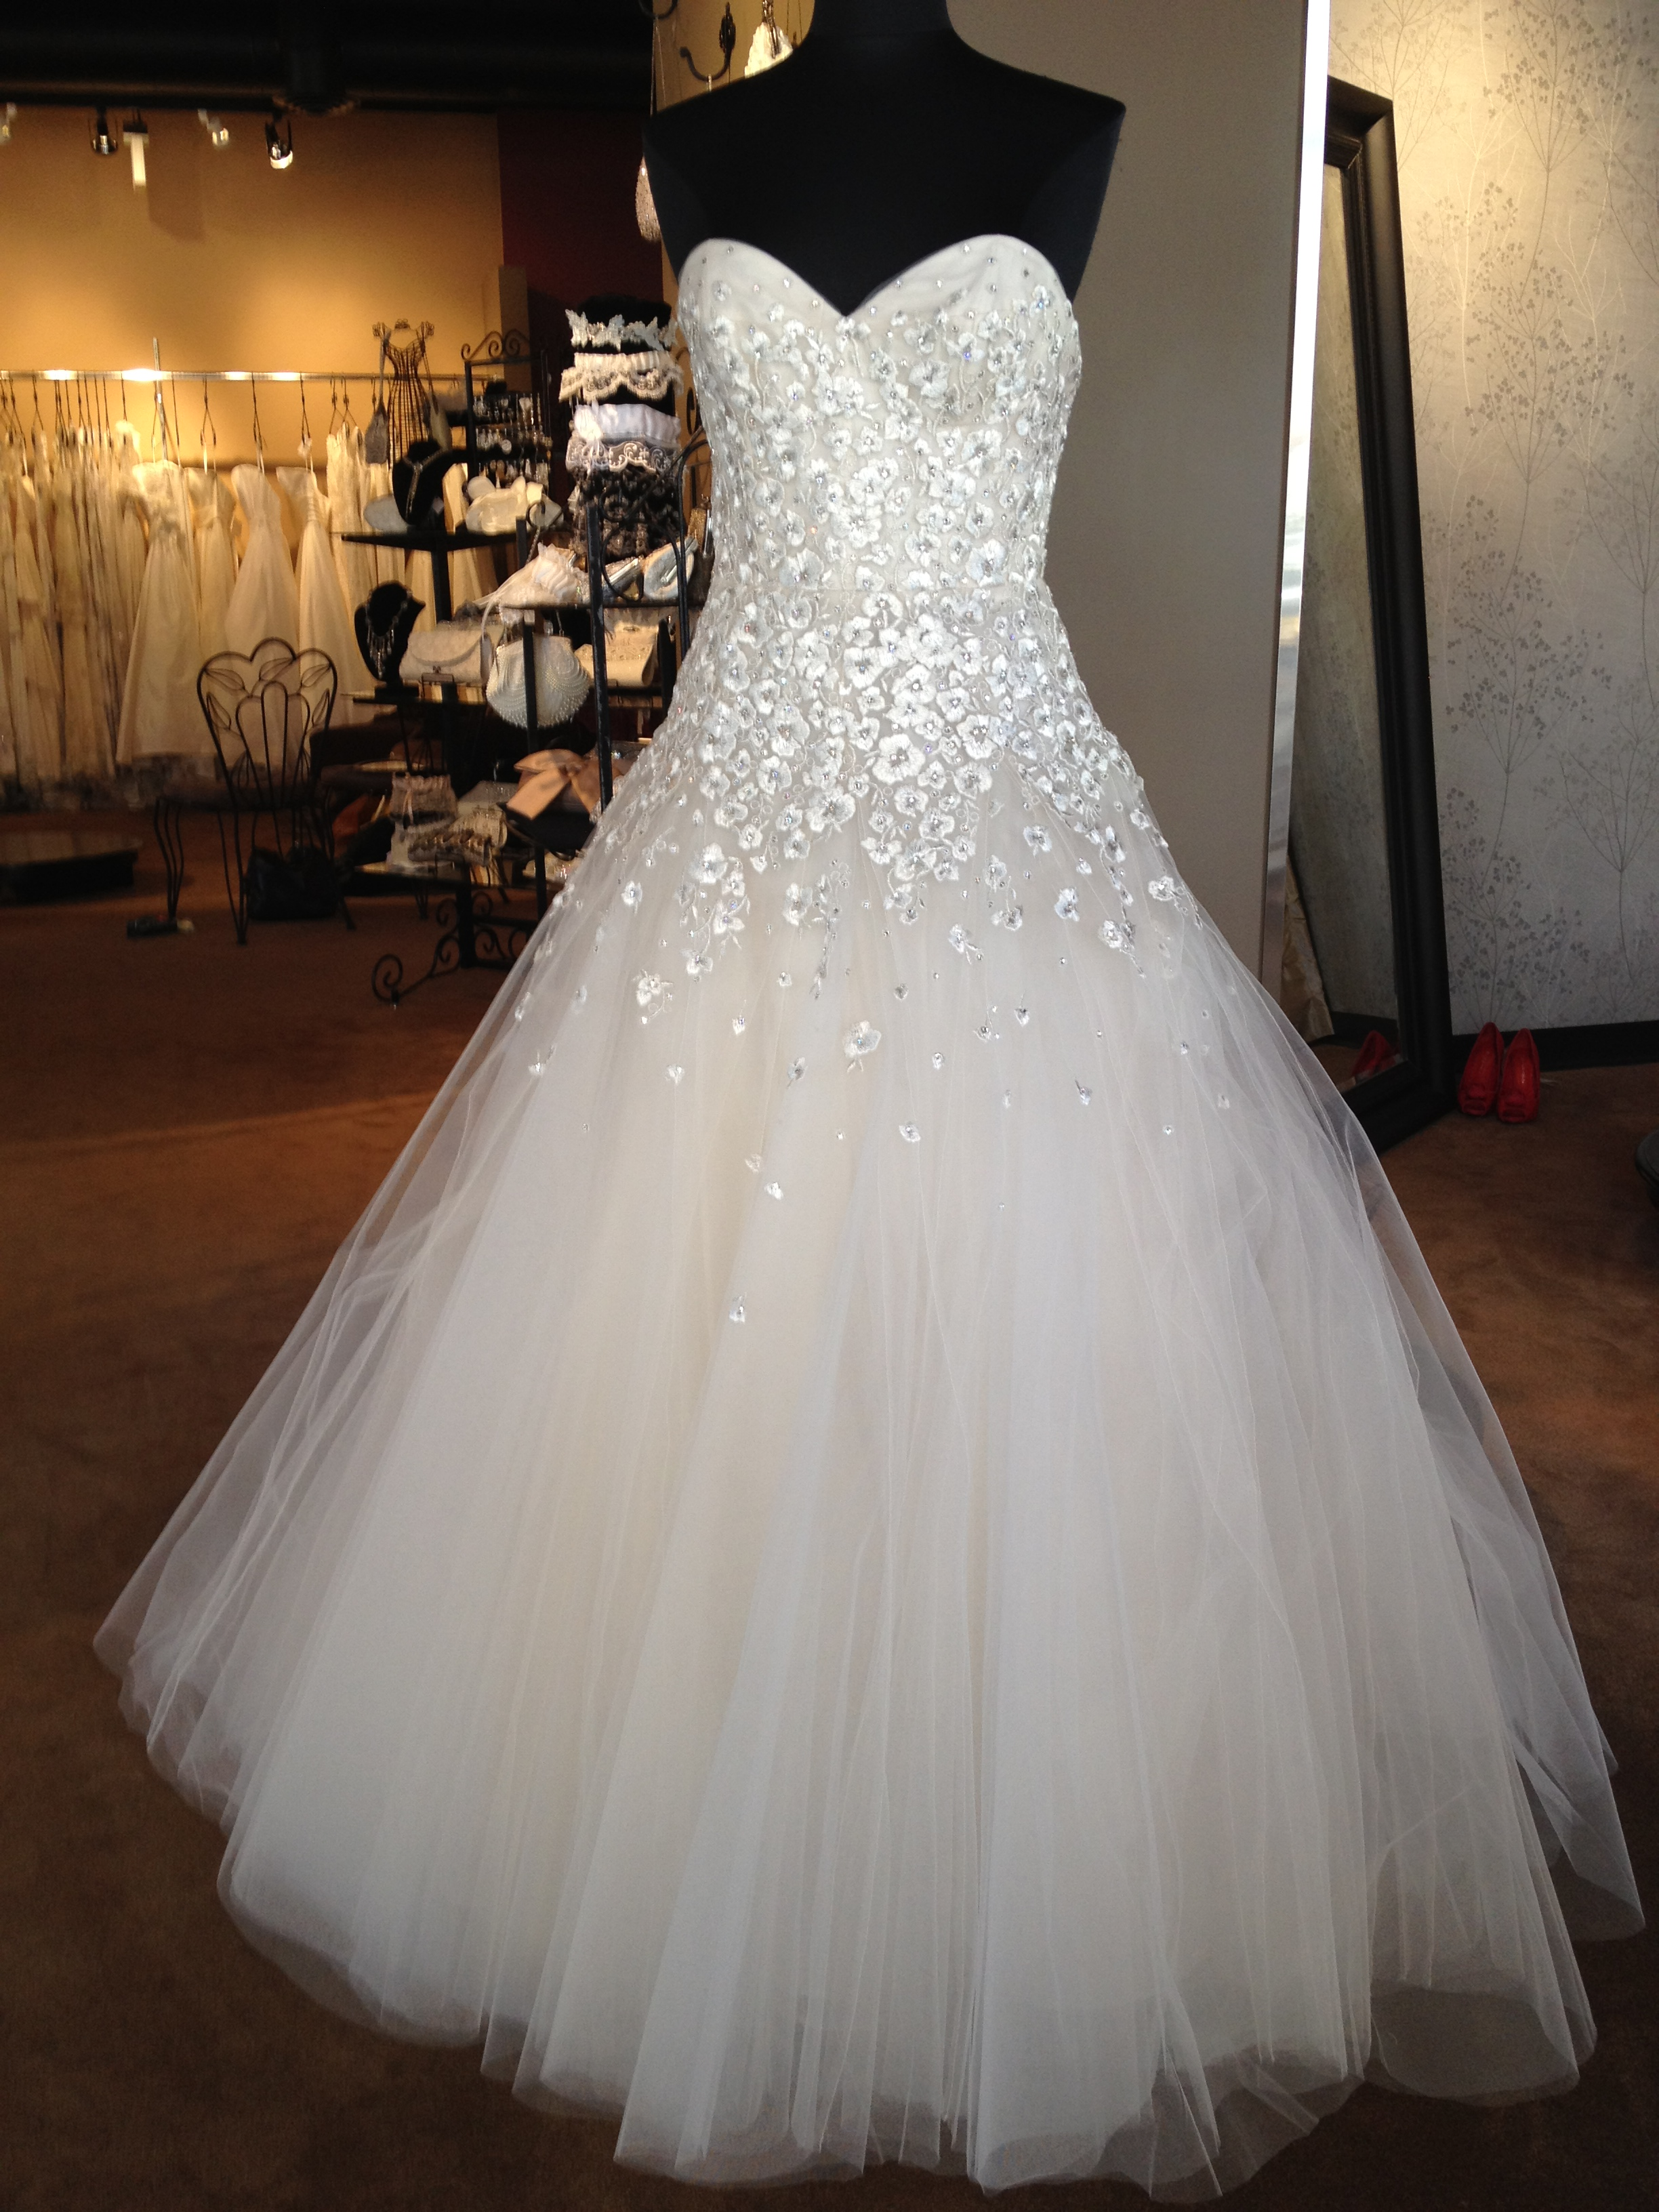 Liancarlo wedding dress 5806 - front